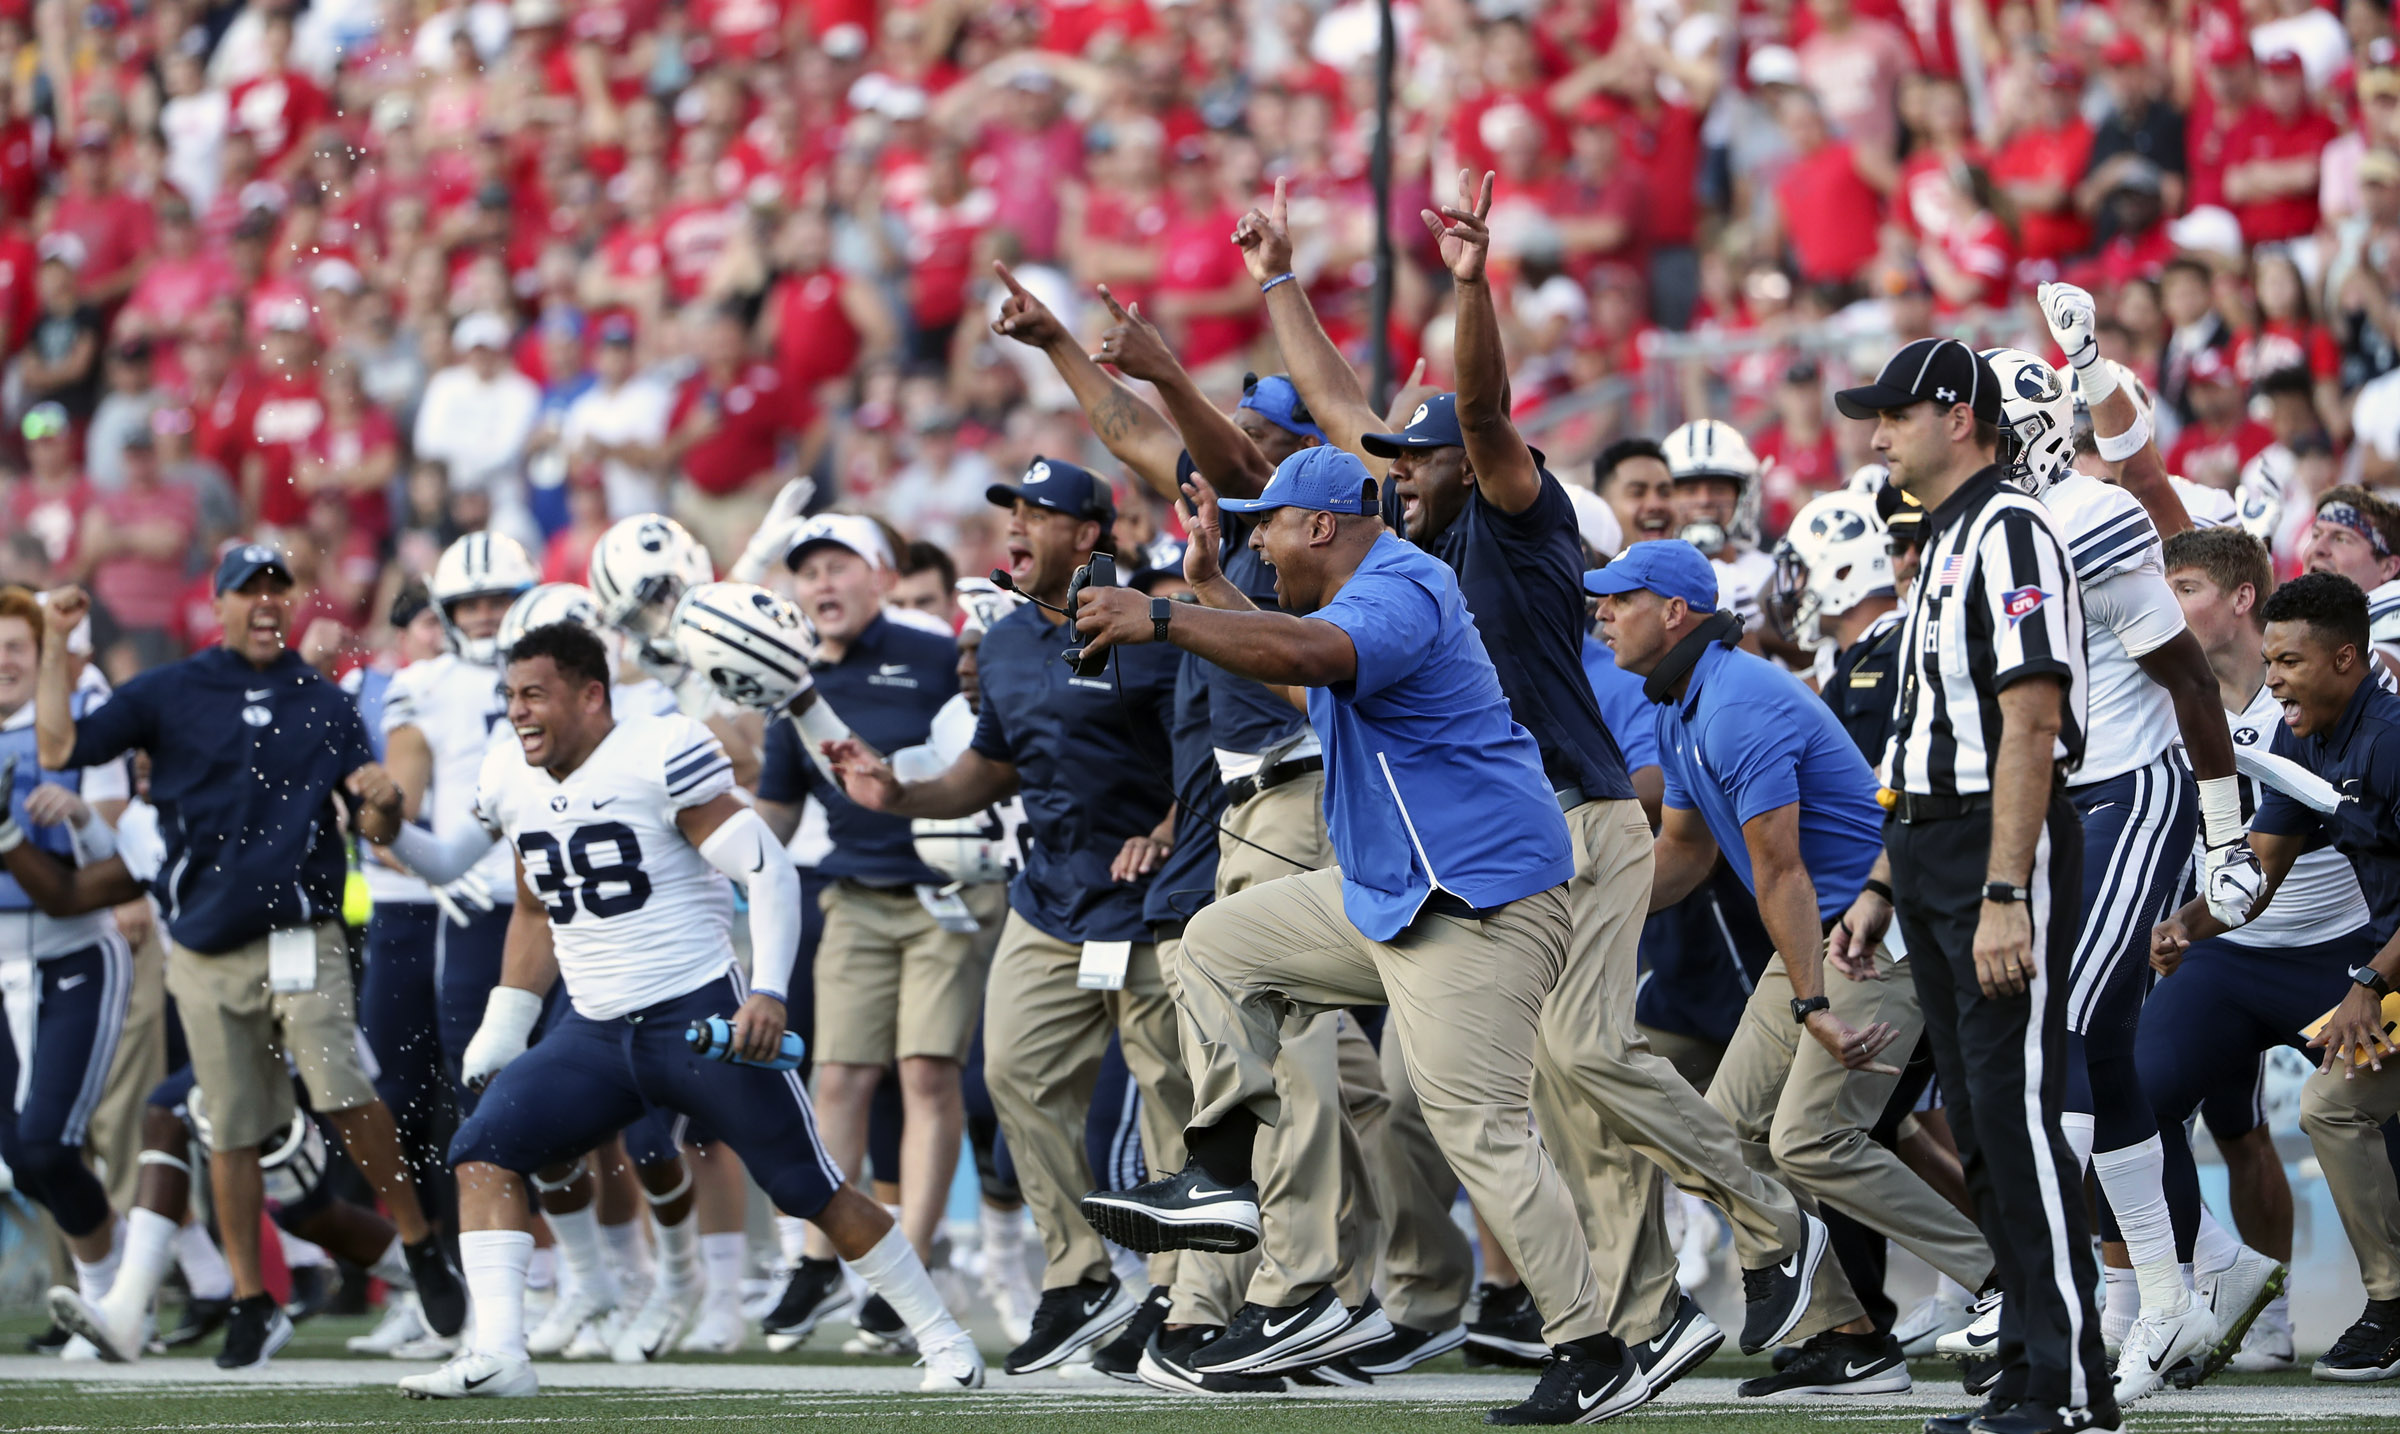 The Cougar bench explodes with excitement after a potential game-tying Wisconsin kick sailed wide during the Wisconsin-BYU football game at Camp Randall Stadium in Madison, Wisconsin, on Saturday, Sept. 15, 2018. BYU is still on the outside looking in on Power Five, but have a long history of competing against Power Five schools.